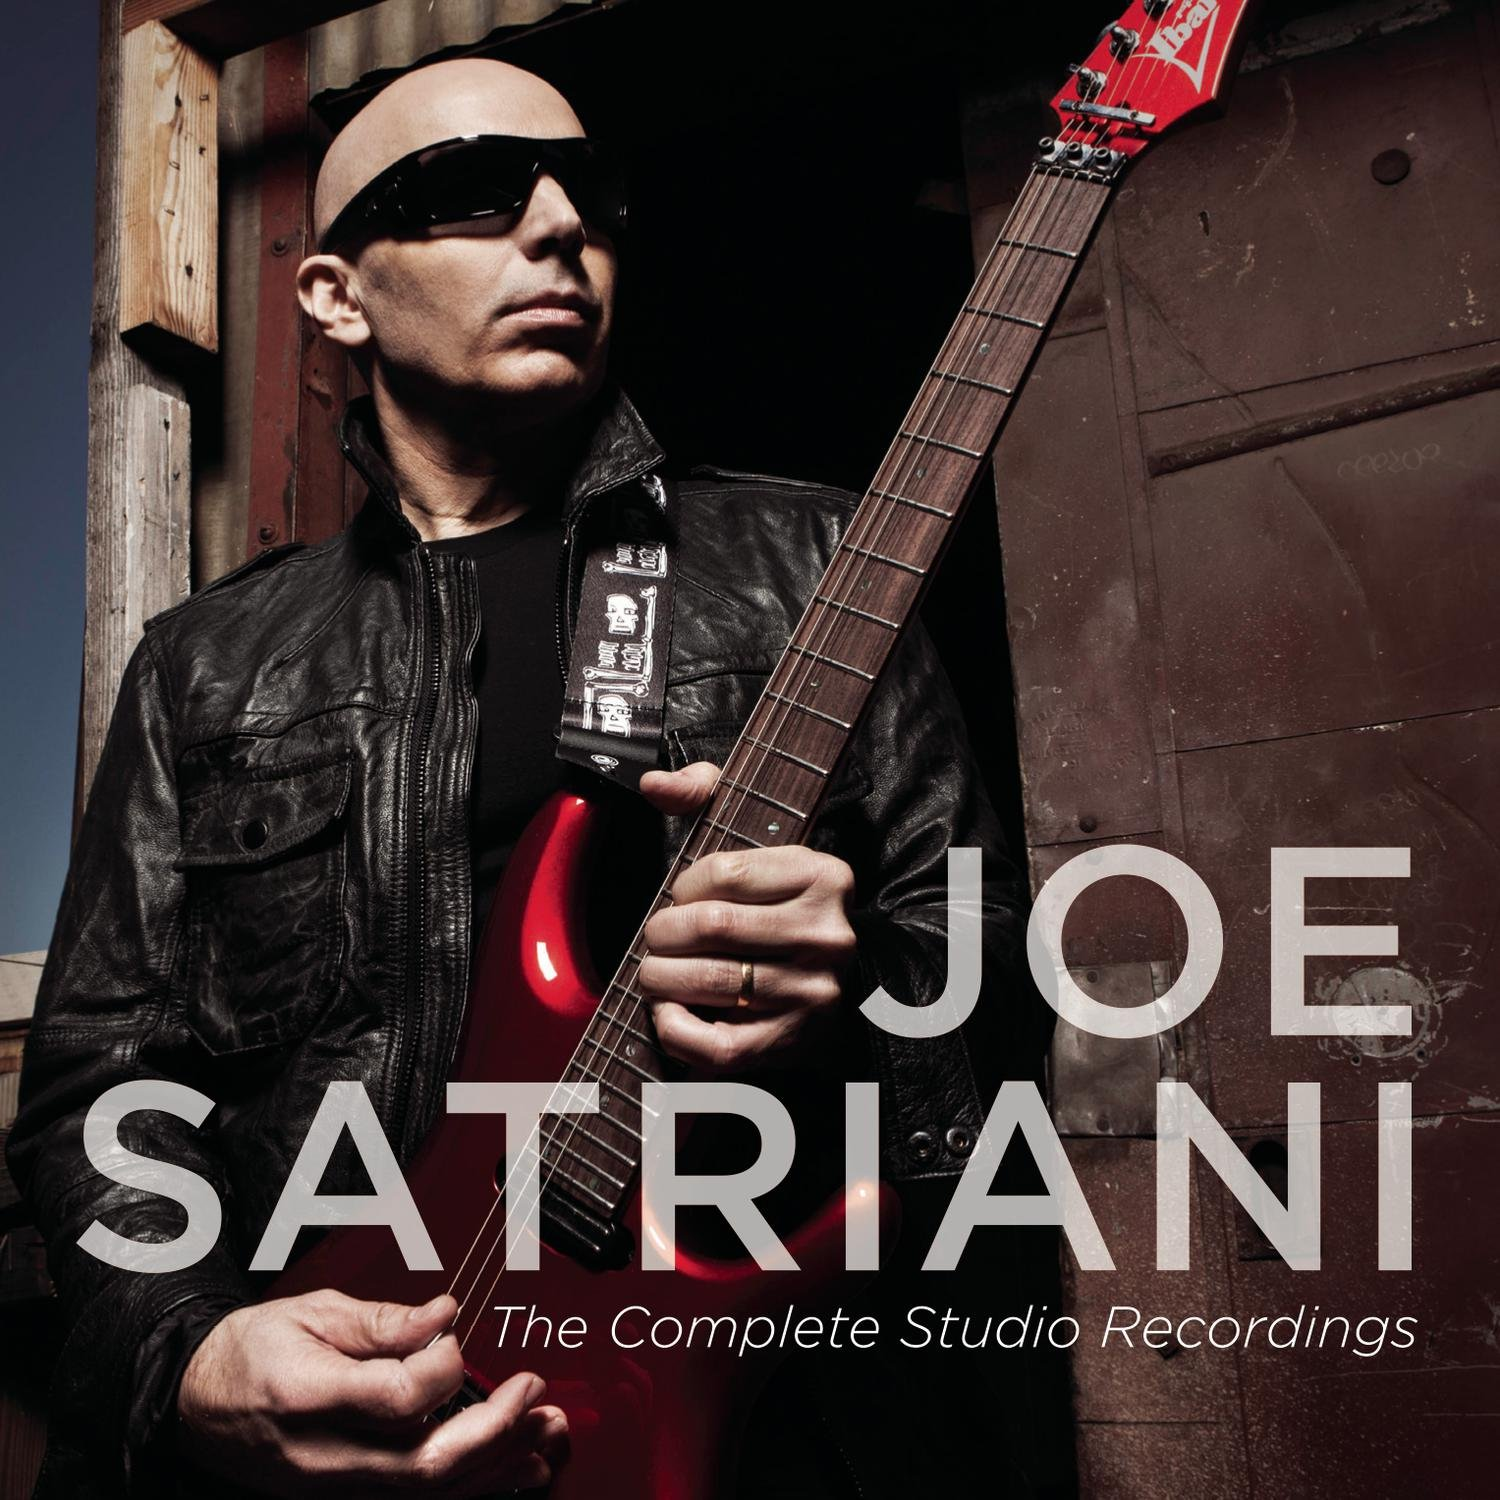 Joe Satriani: The Complete Studio Recordings